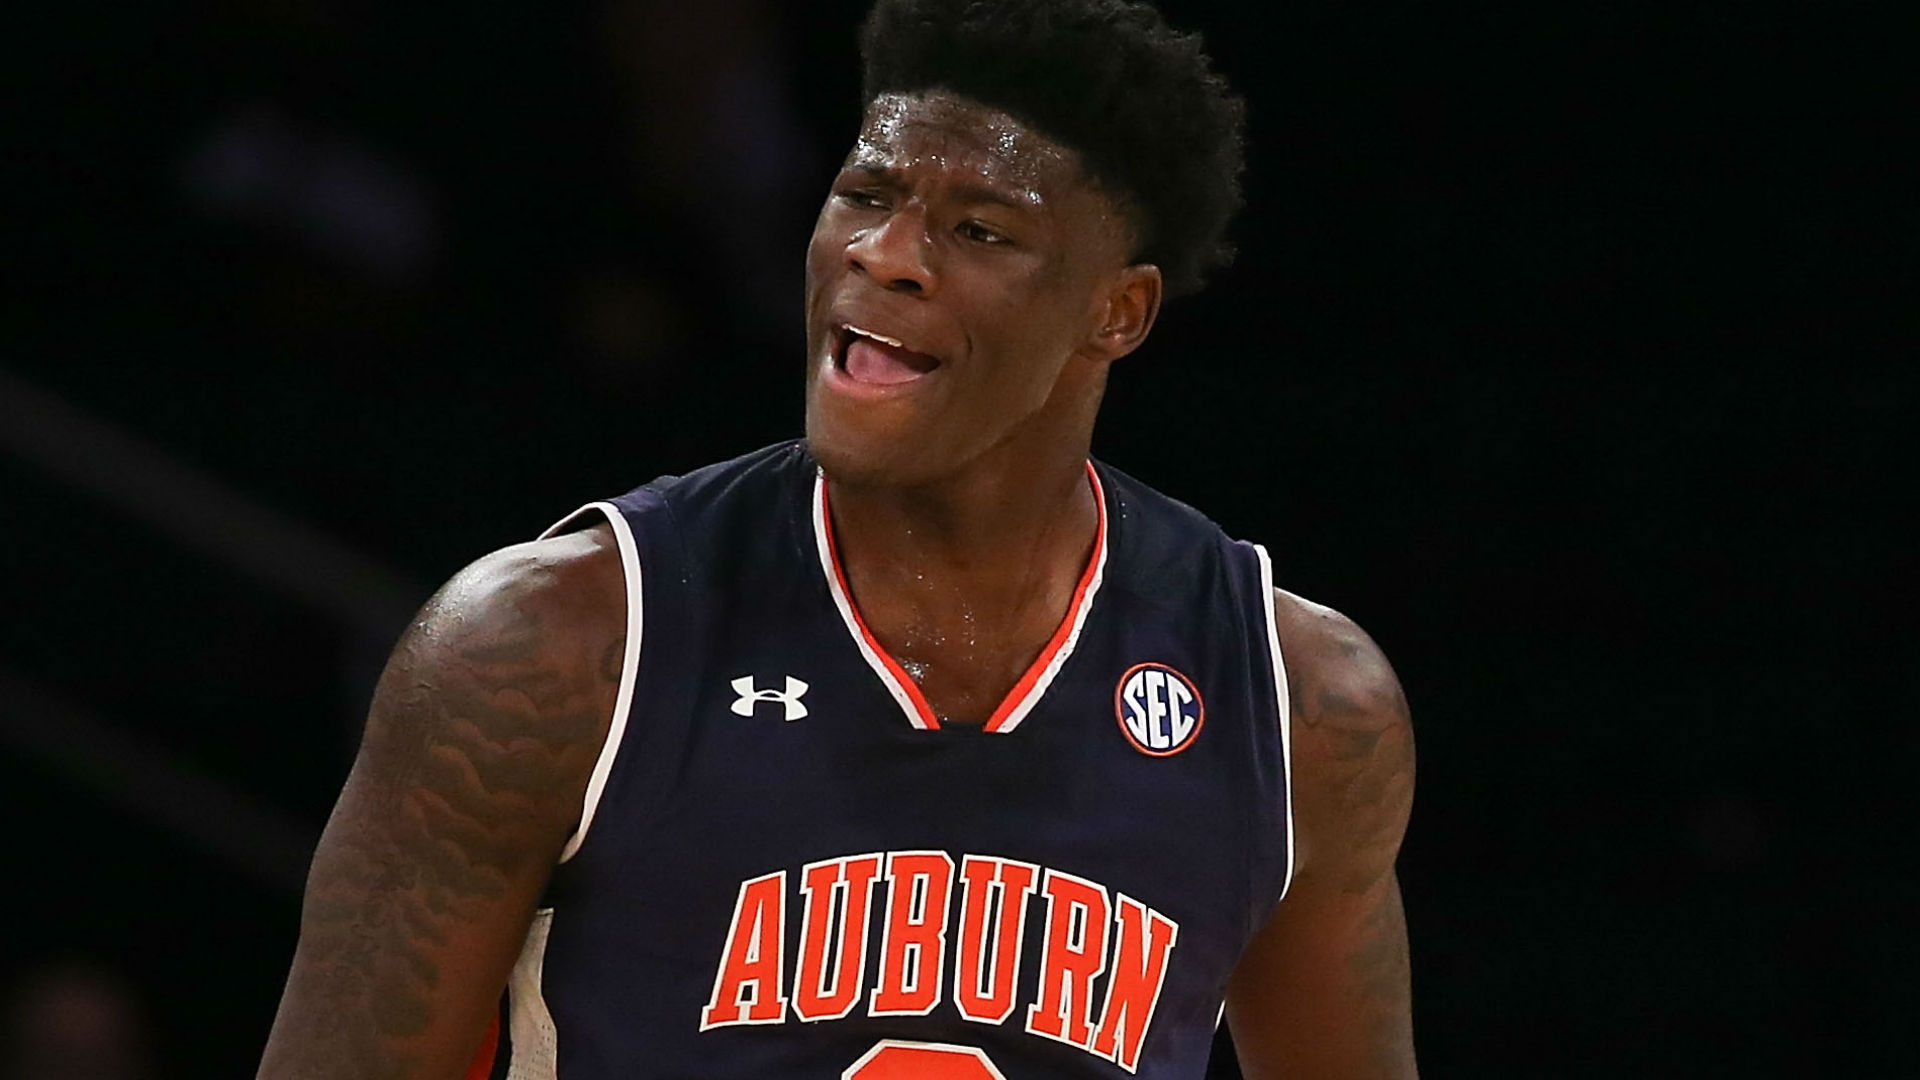 Auburn basketball holds out two players amid FBI investigation